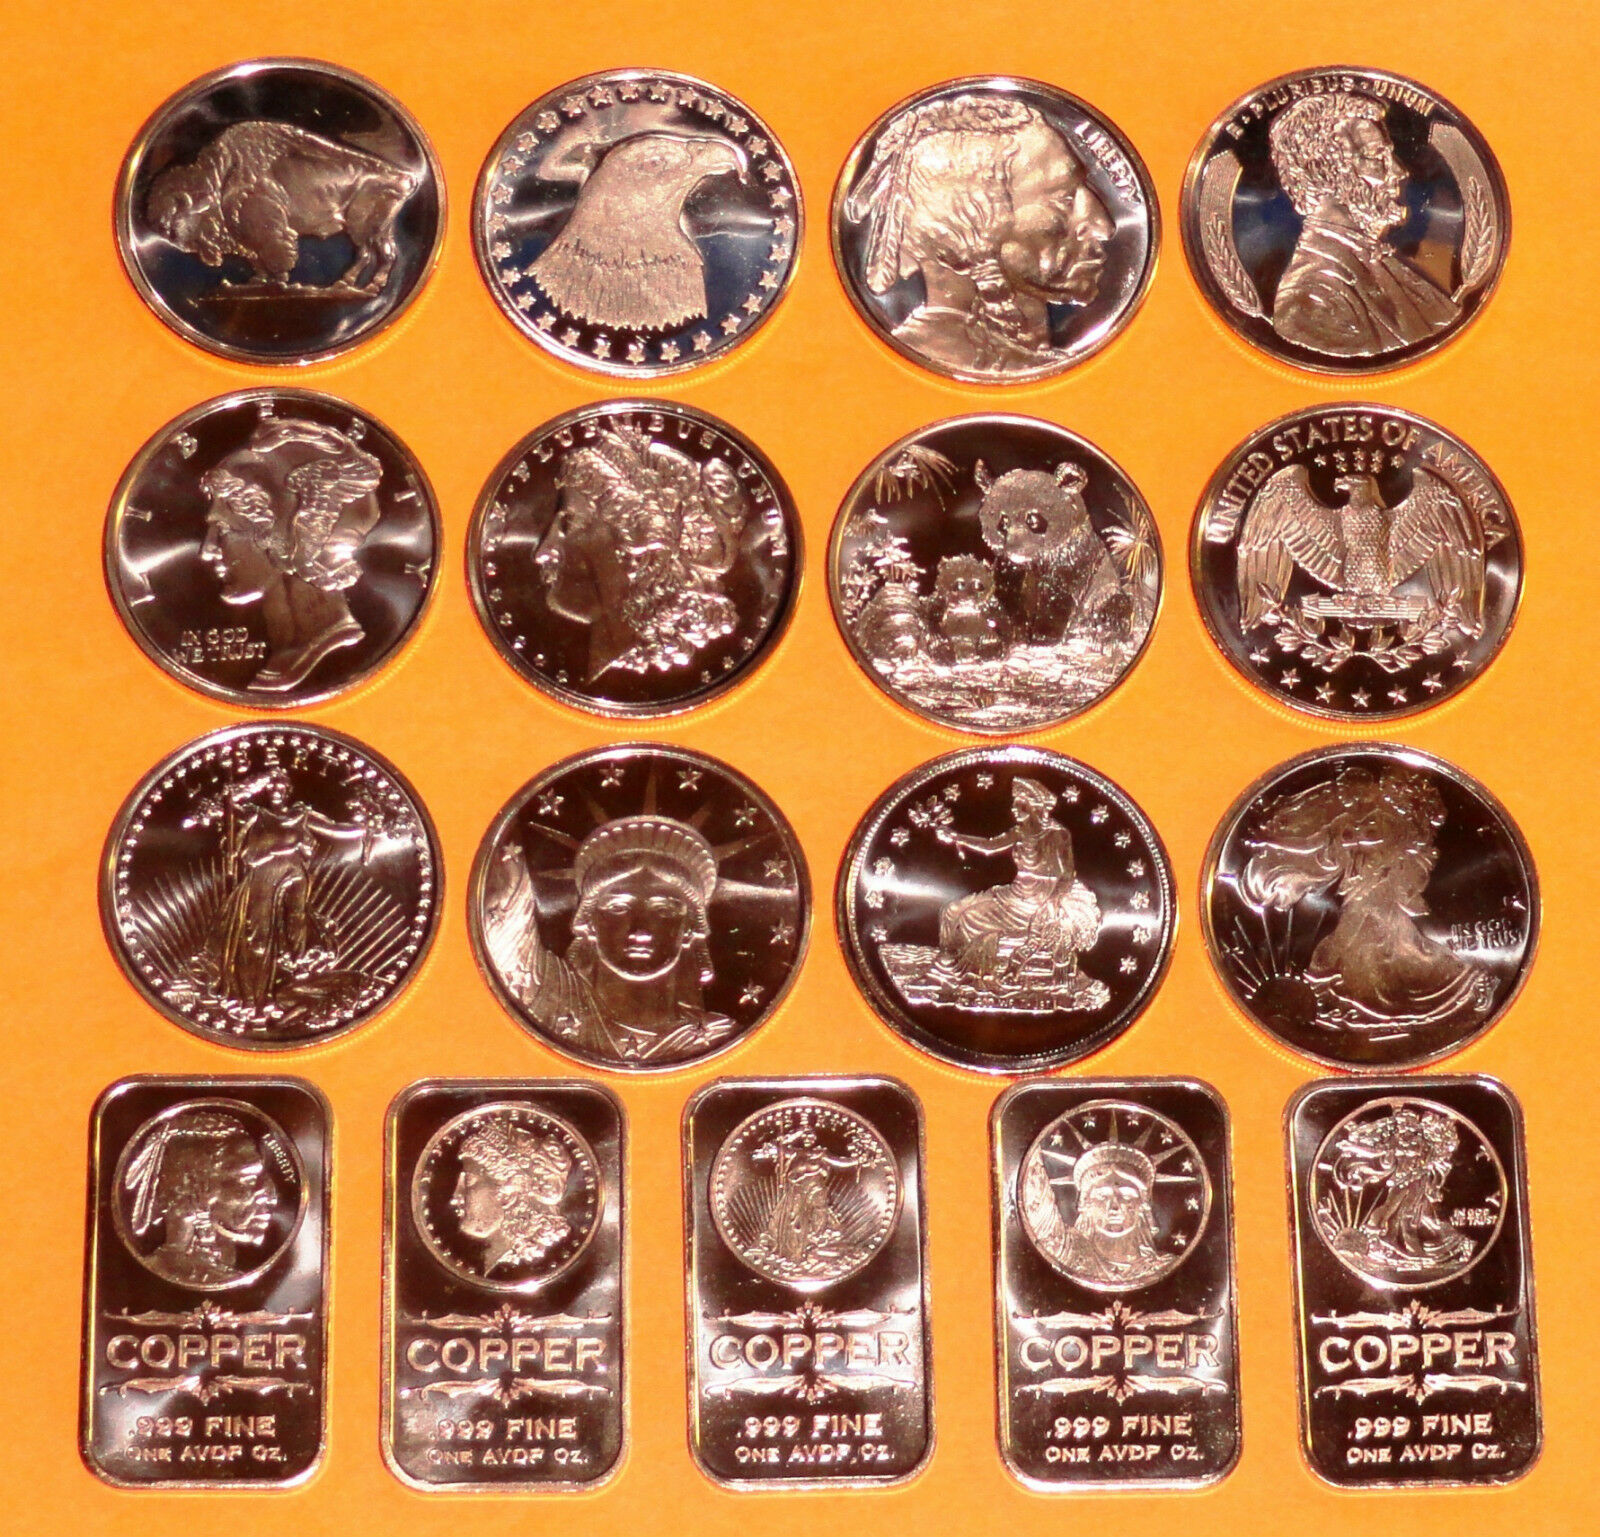 ♦♦ 2012 ♦♦ 12 NEW COINS & 5 NEW BARS ♦♦ 1 oz each ♦♦ .999 Copper Bullion ♦♦